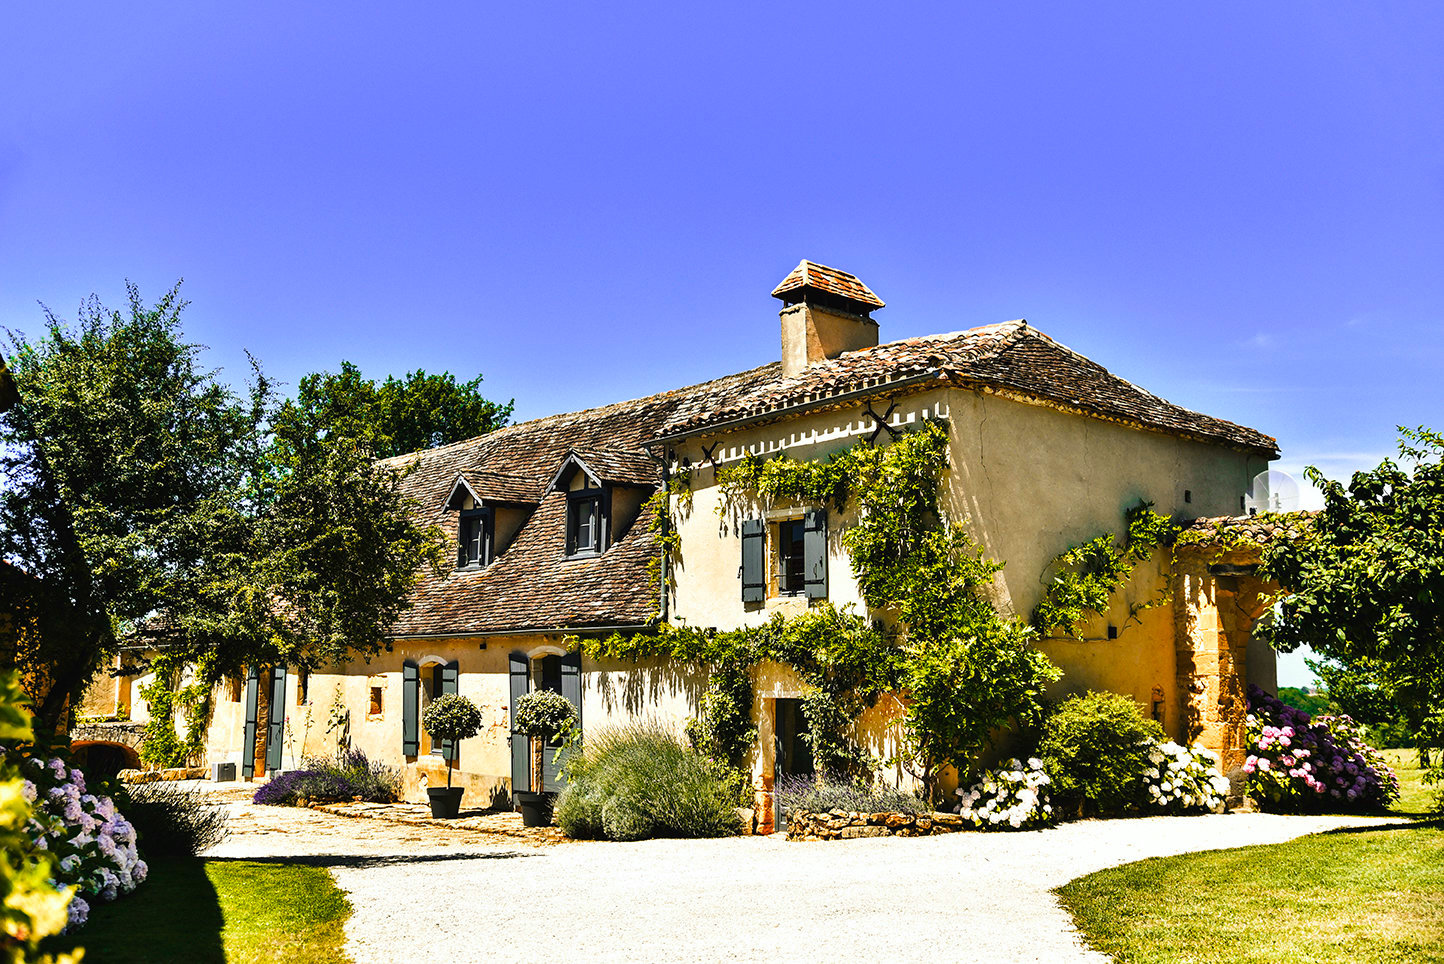 A beautiful stone farmhouse in a rural location in the Dordogne with wisteria, roses and trees